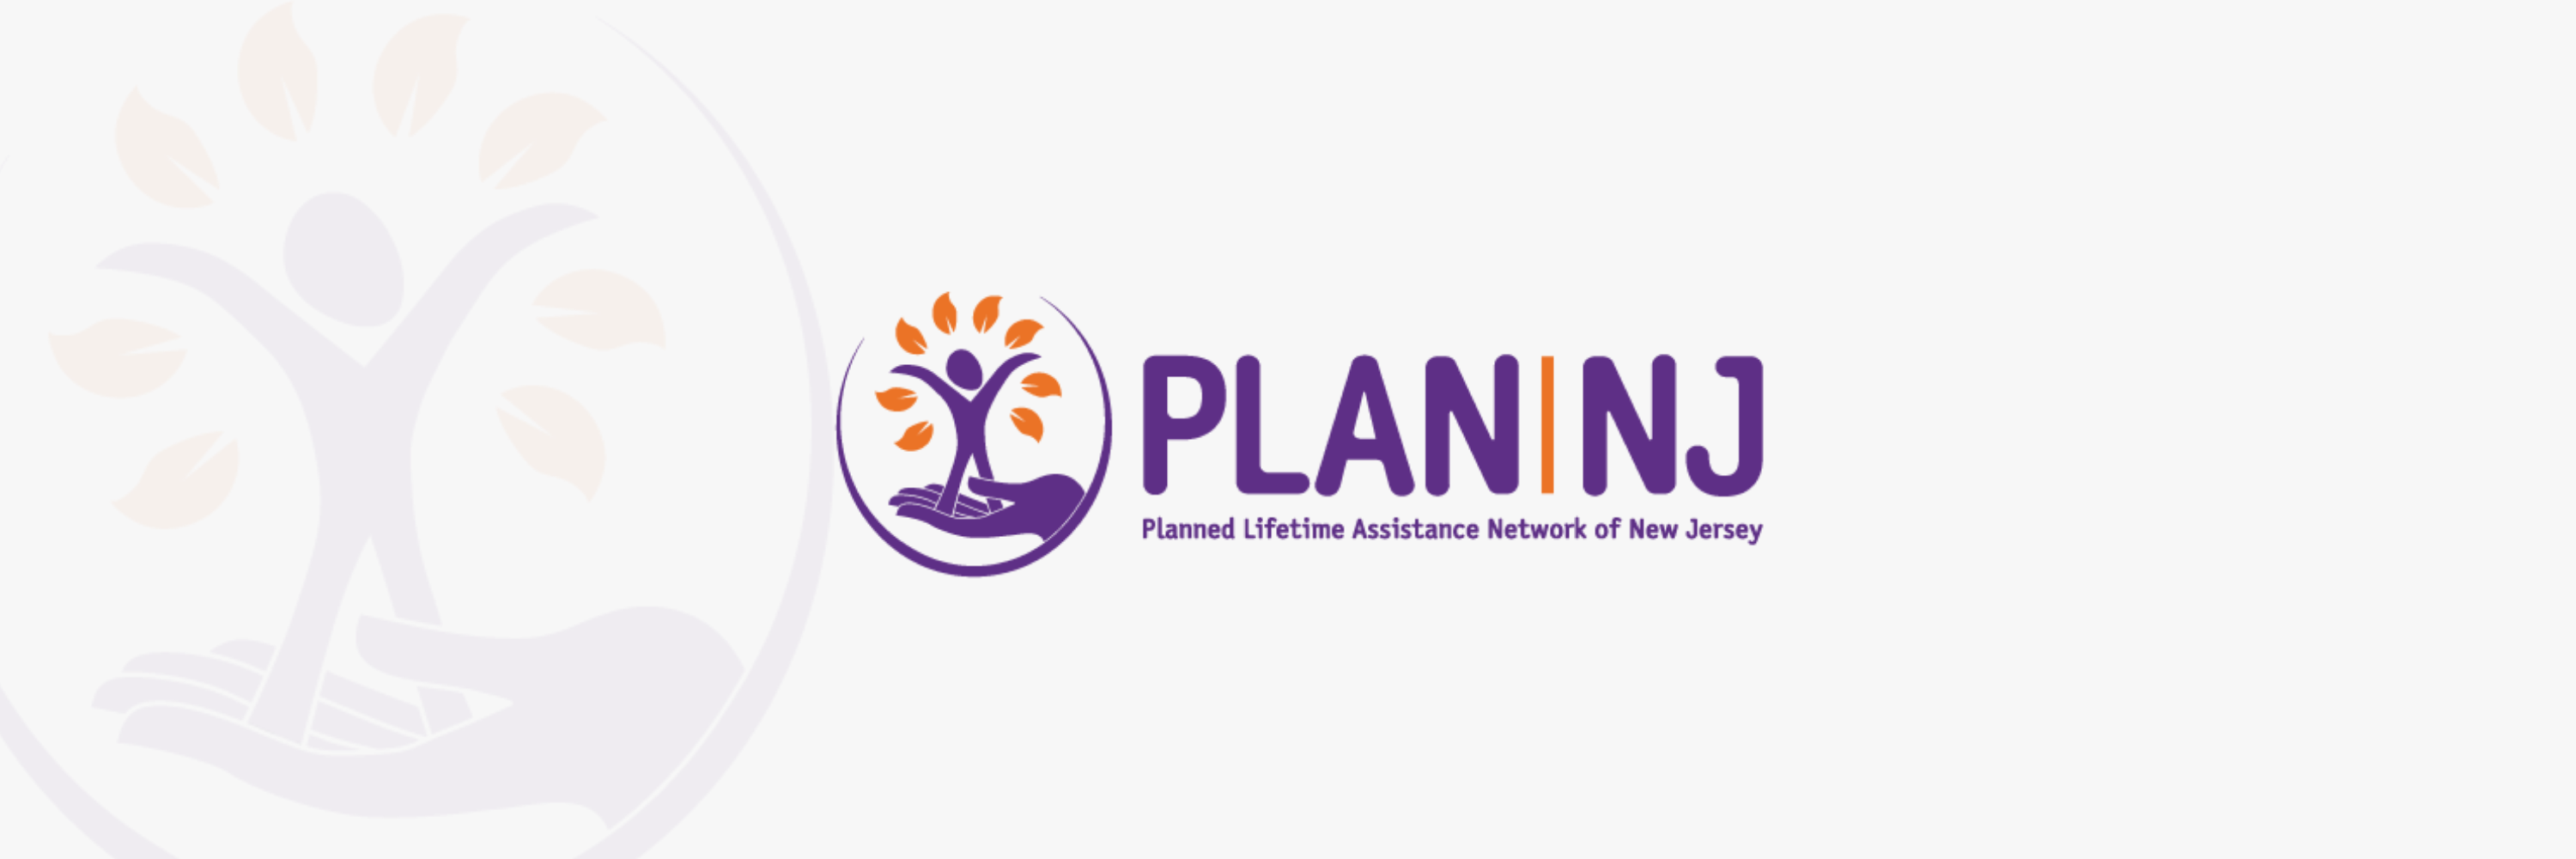 PLAN NJ Client Stories Background